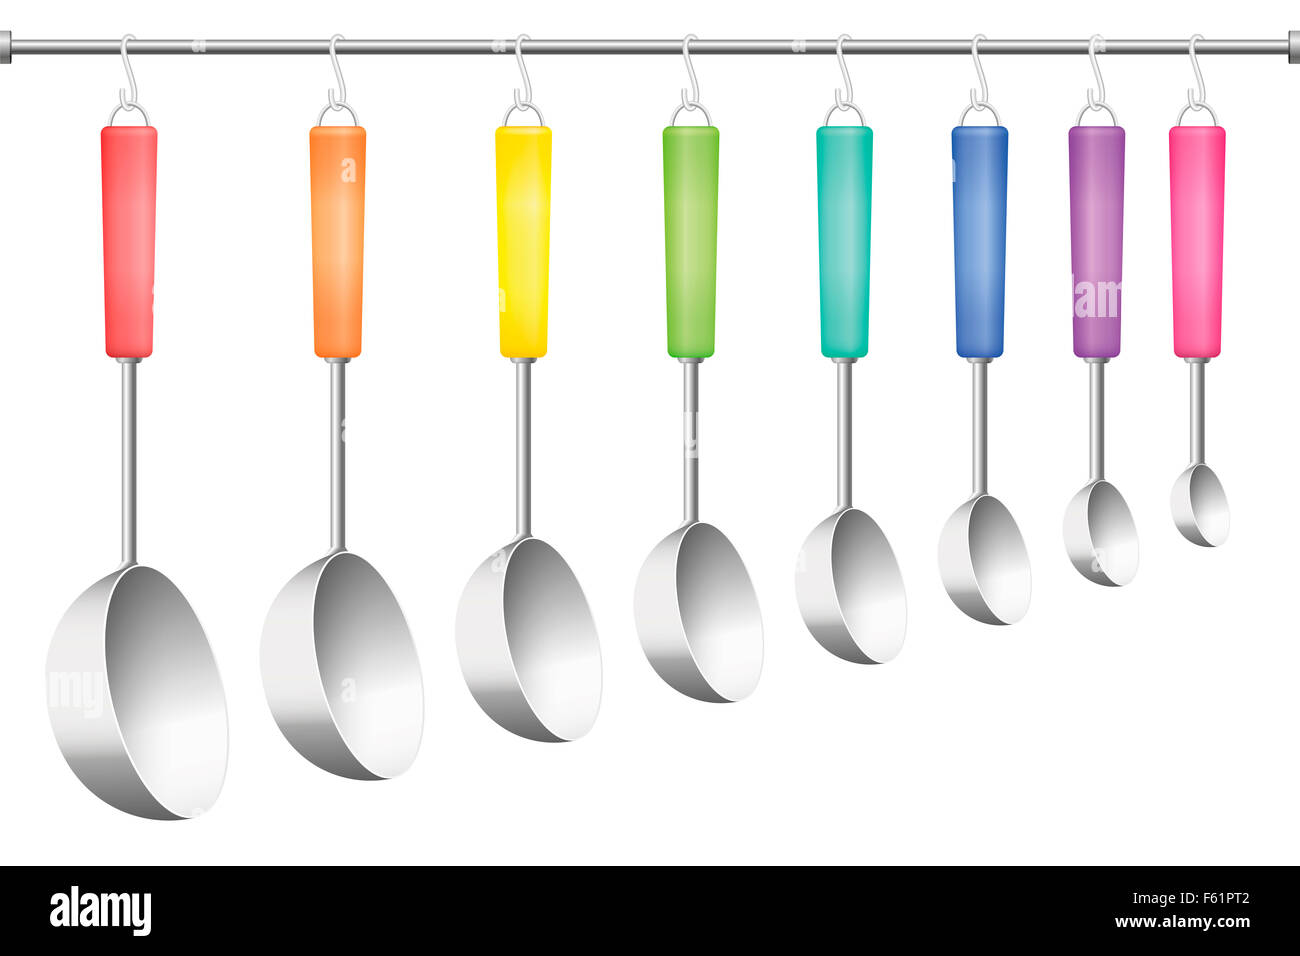 Ladle rack, eight different sizes and colors. Illustration on white background. - Stock Image